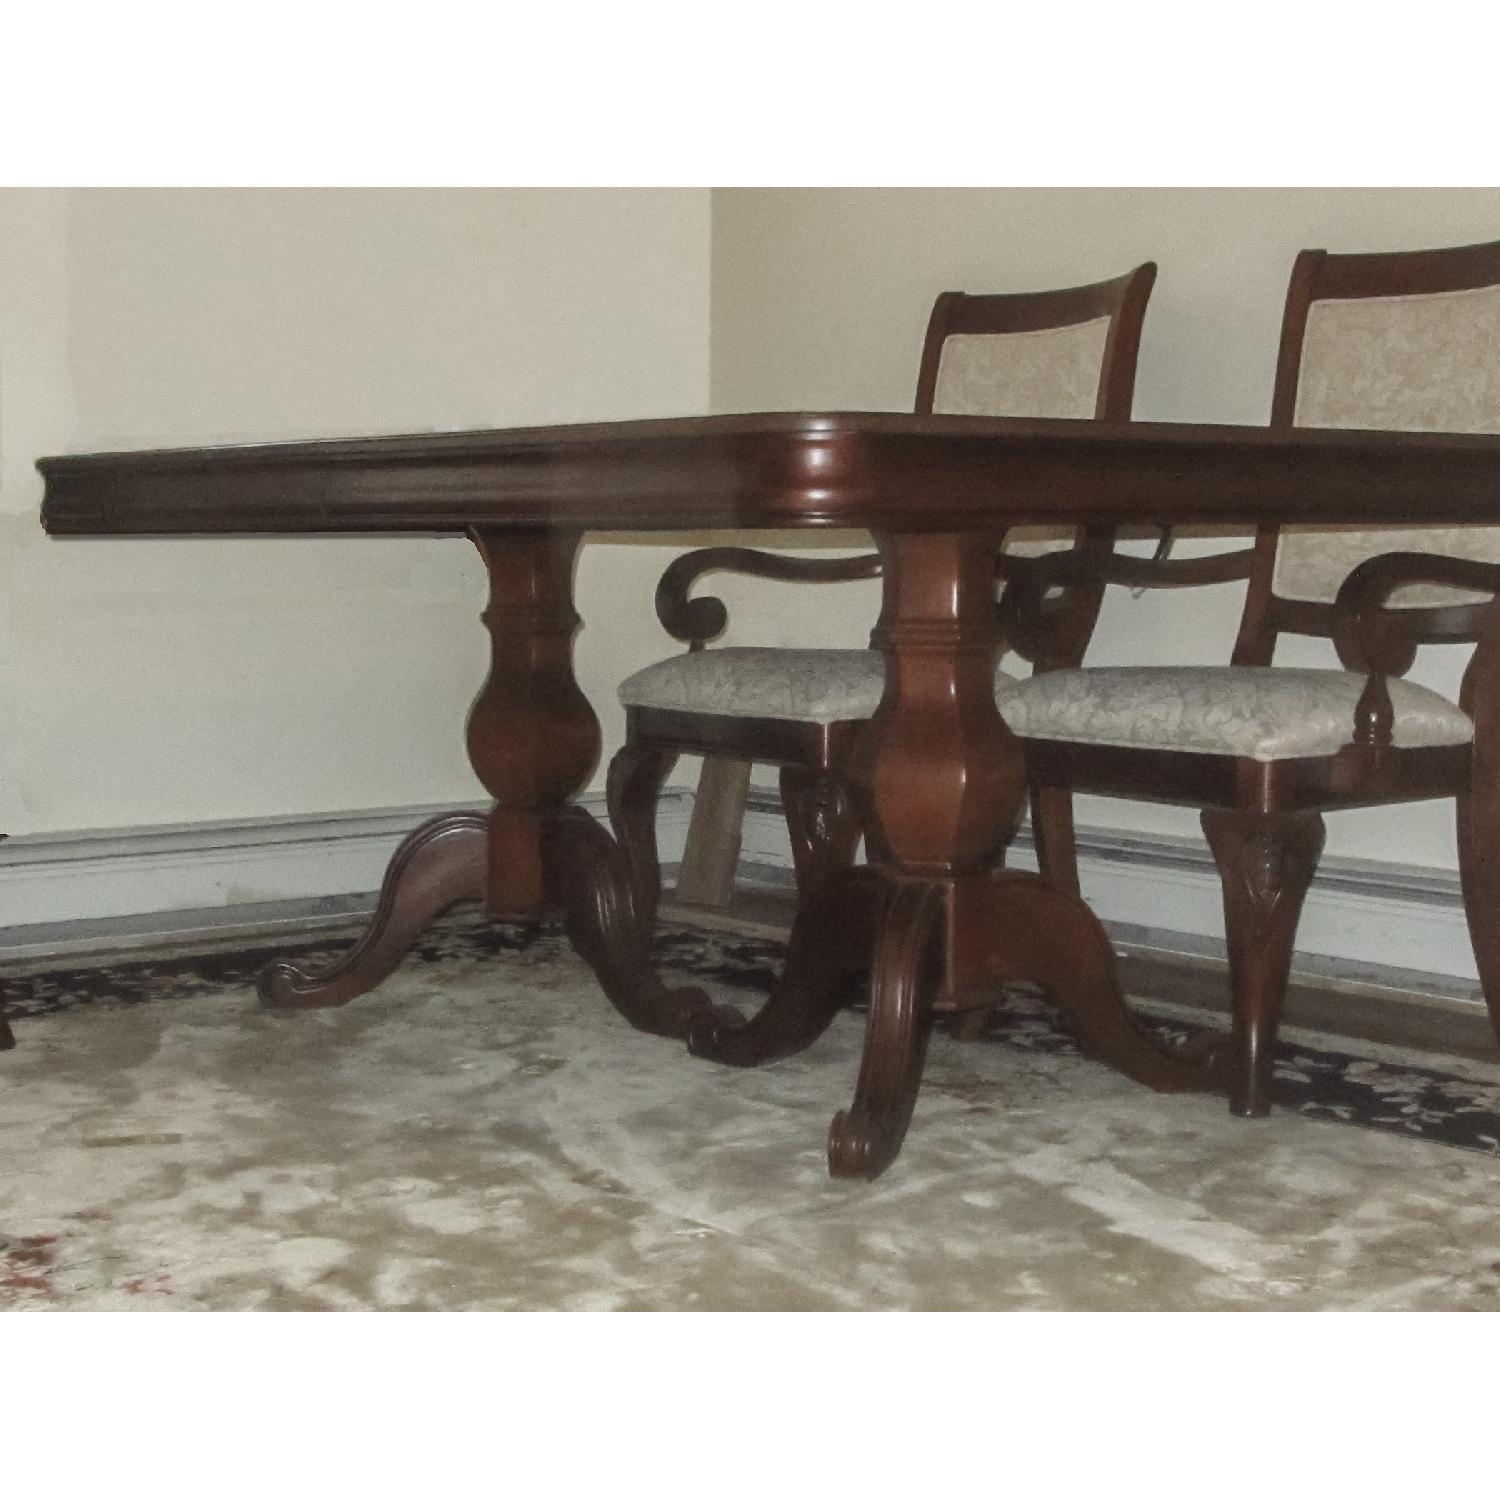 Raymour And Flanigan Kitchen Sets: Raymour & Flanigan Mahogany Dining Table W/ 6 Chairs